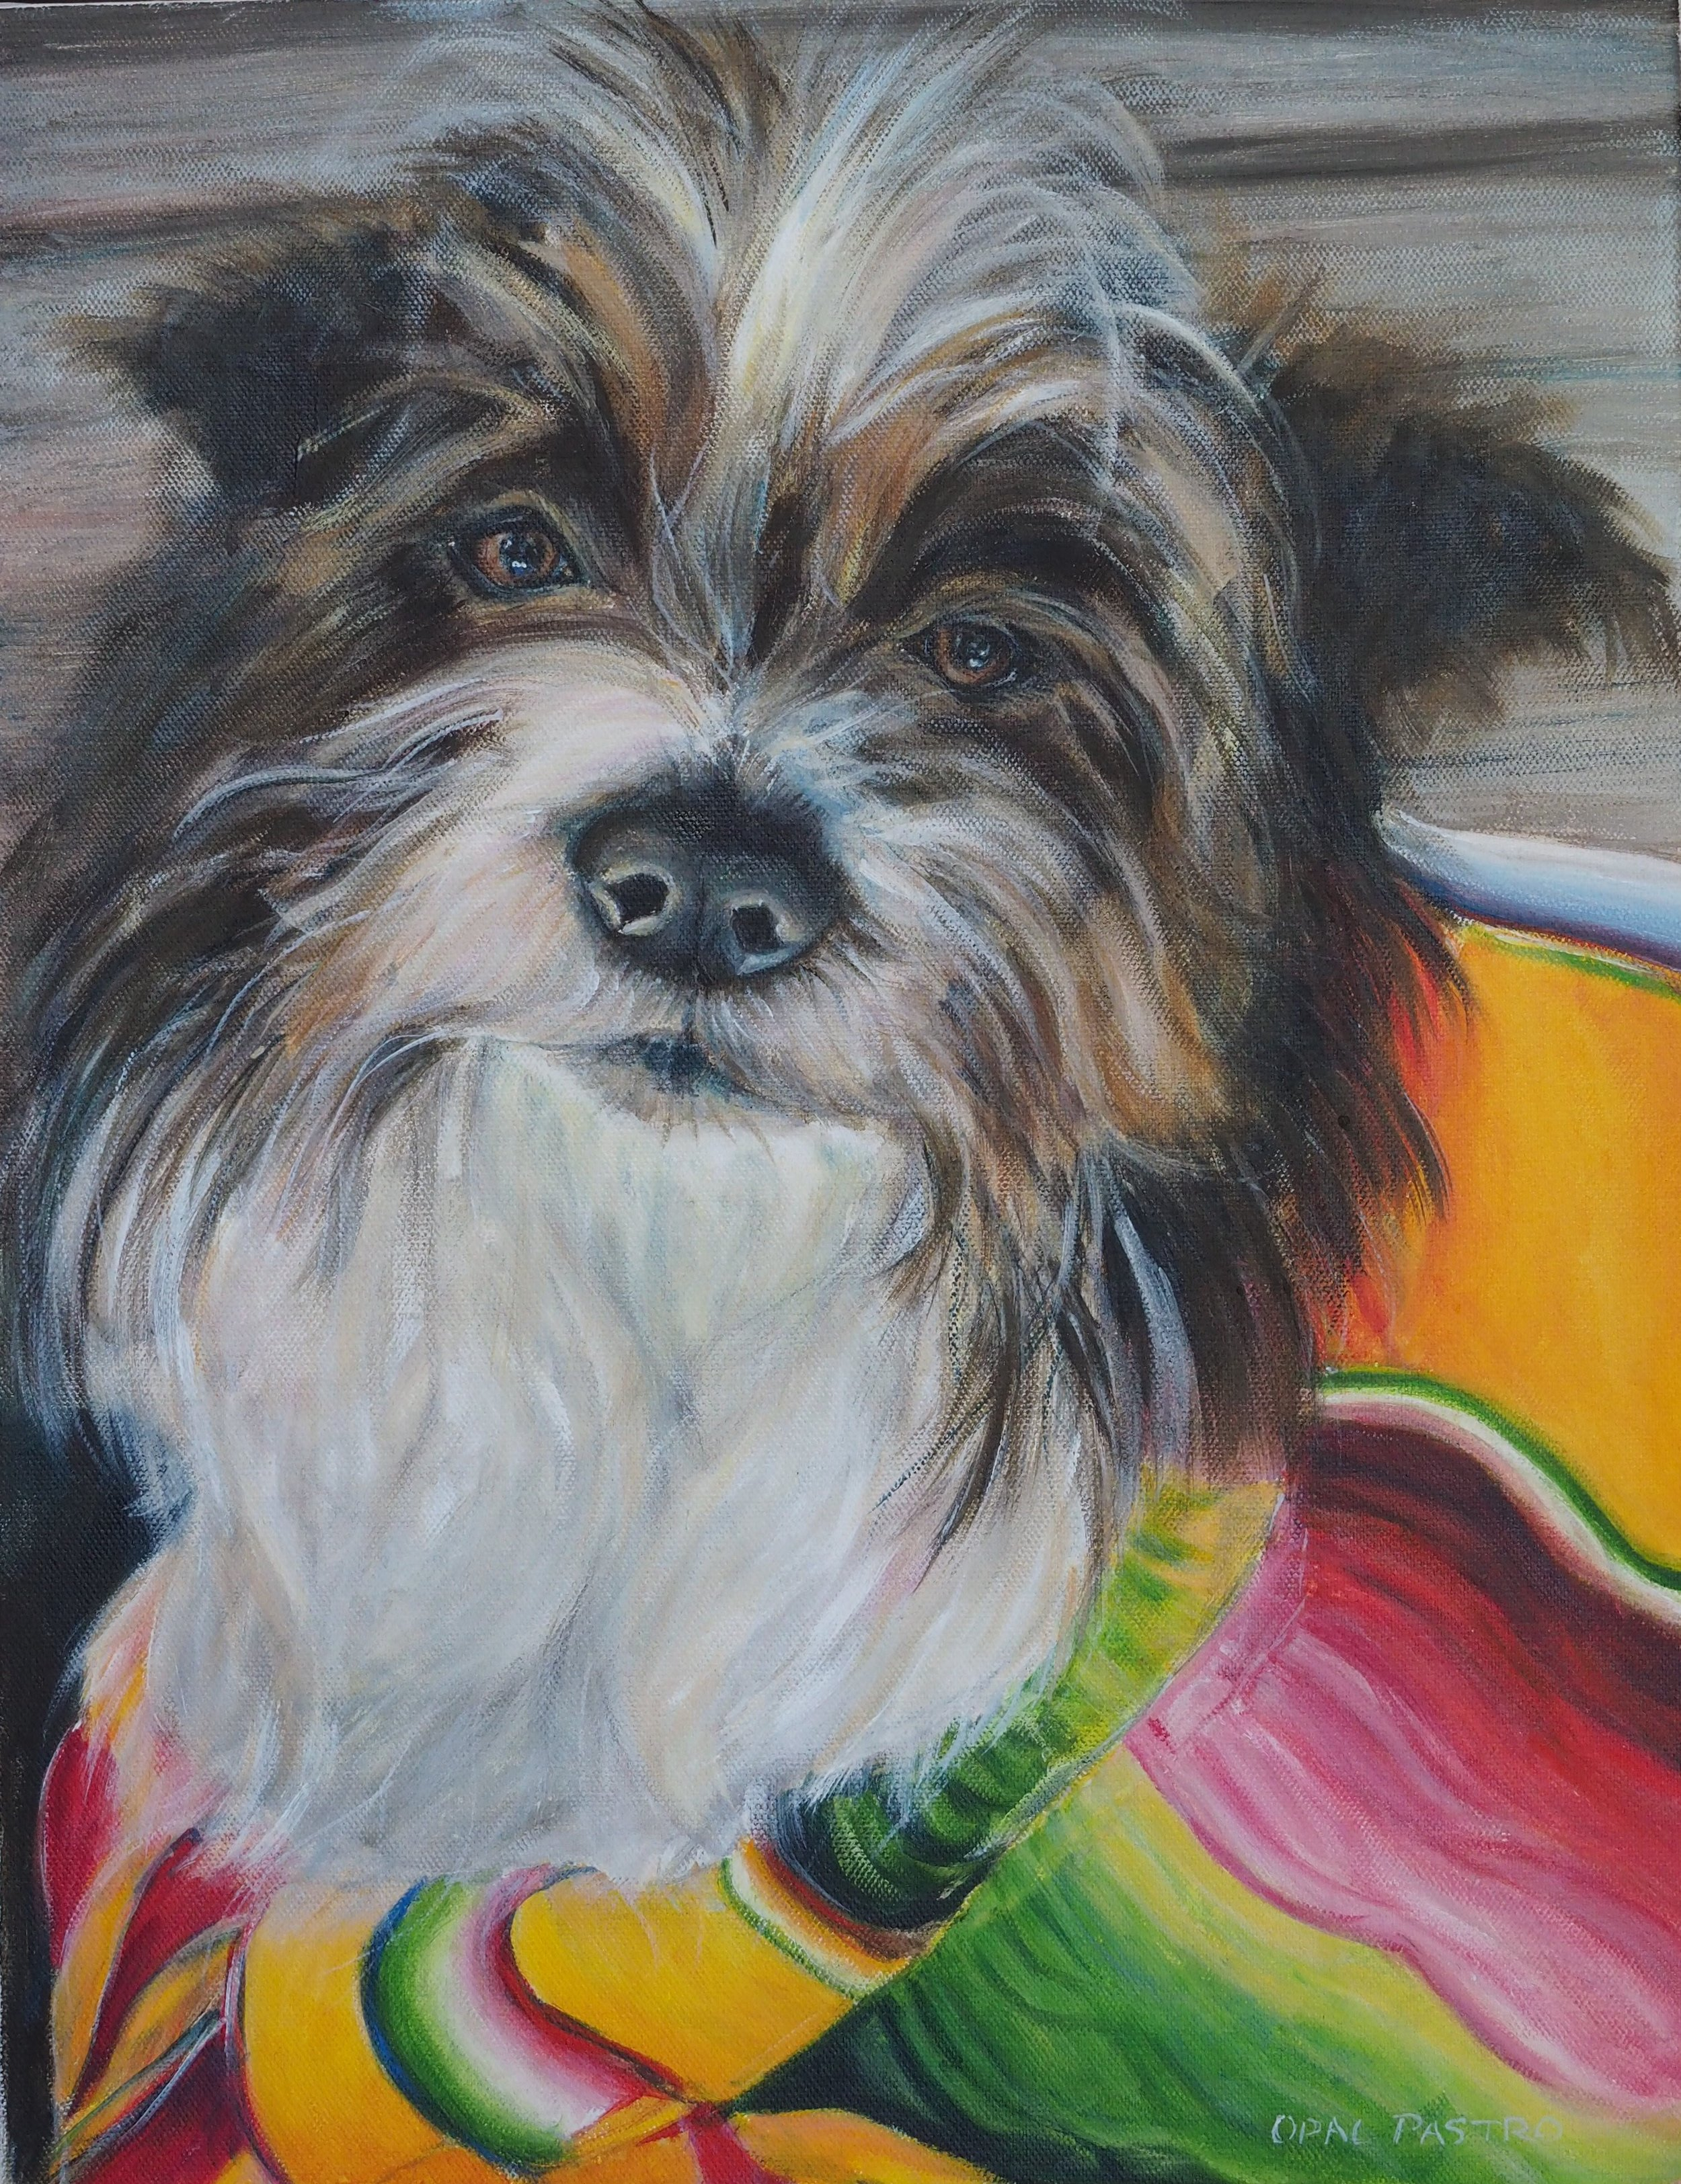 DOG MEMORIAL ART OF TERRIER MIX WITH COLOURFUL BLANKET BY OPAL PASTRO ART